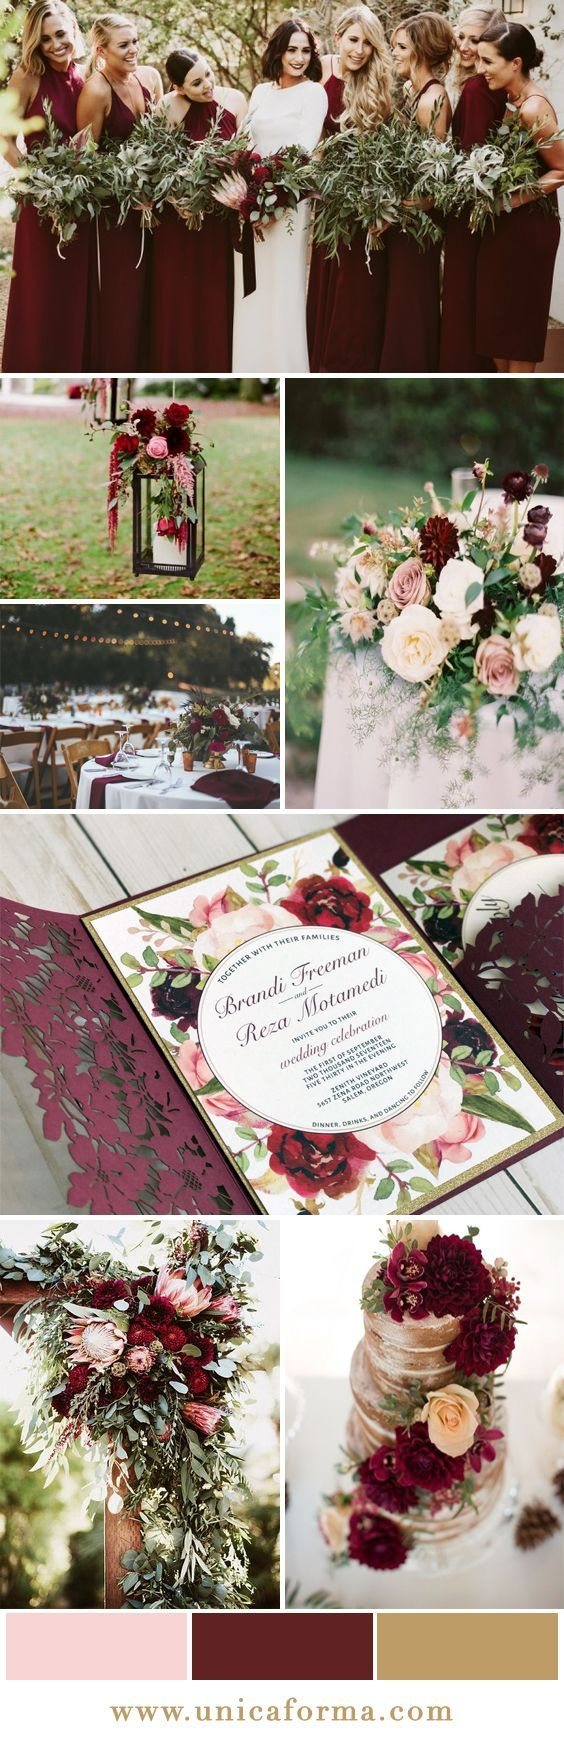 Rustic Wedding Marsala blush and gold colour palette.